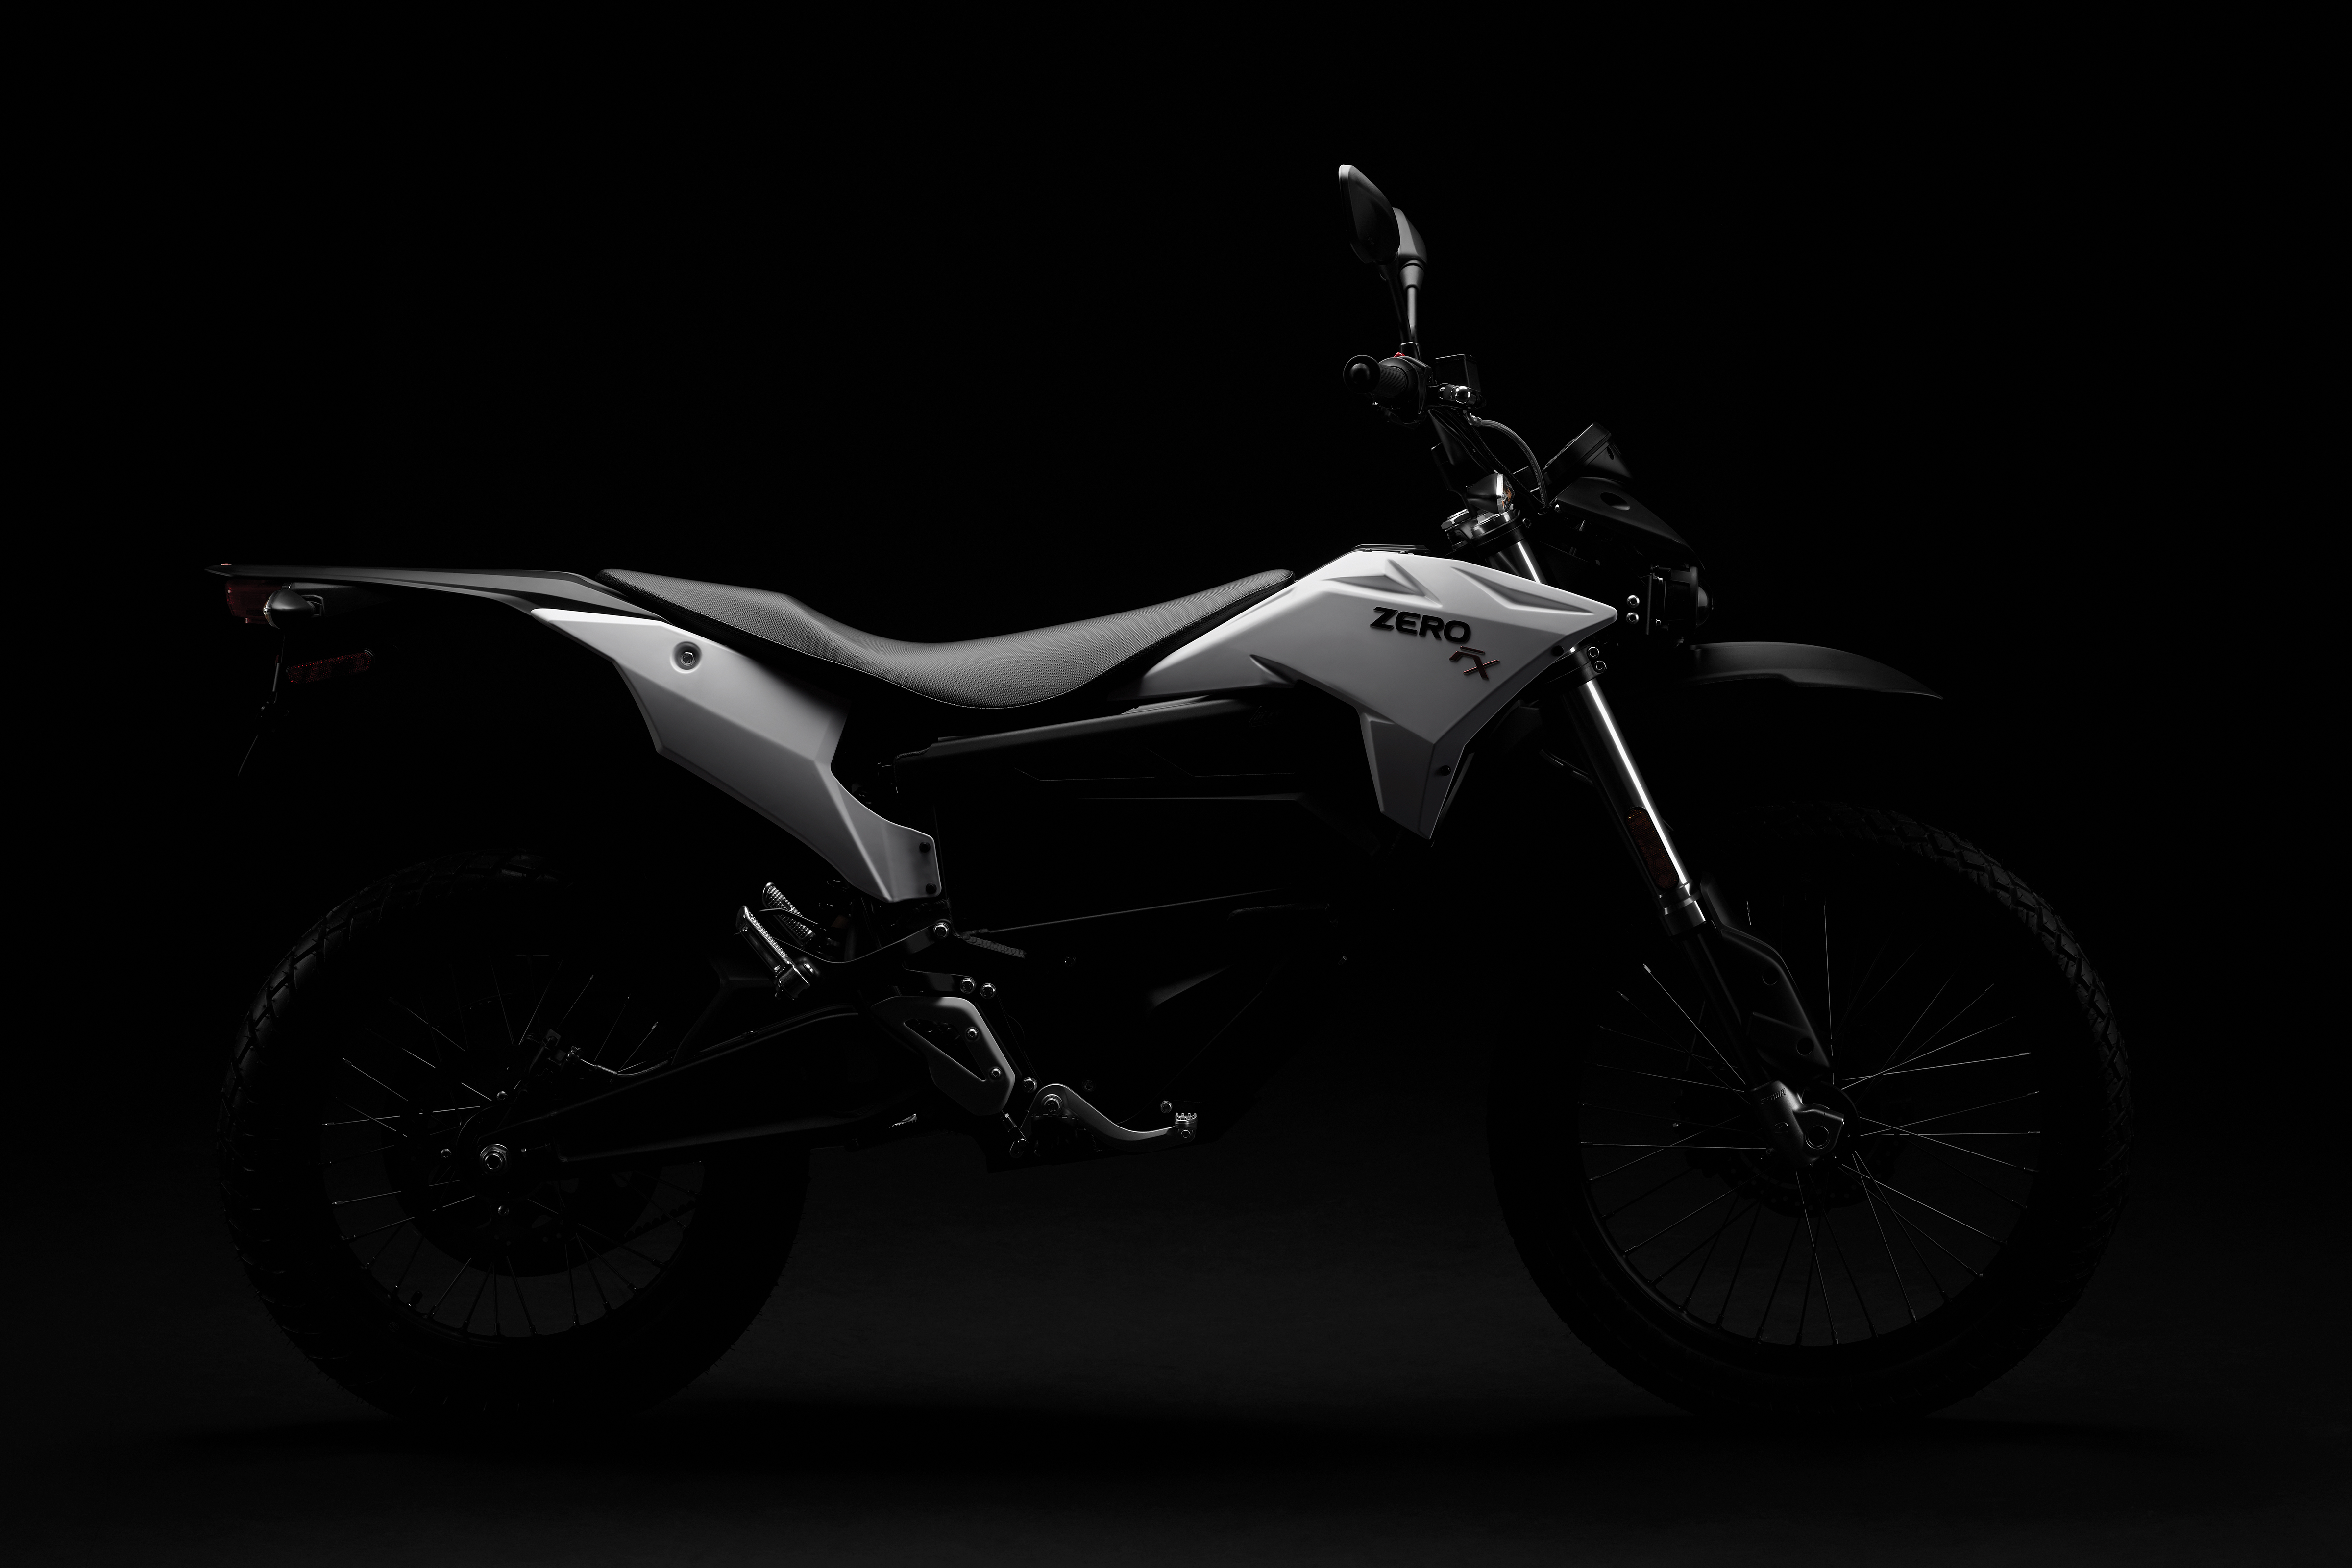 2018 Zero FX Electric Motorcycle: Silhouette